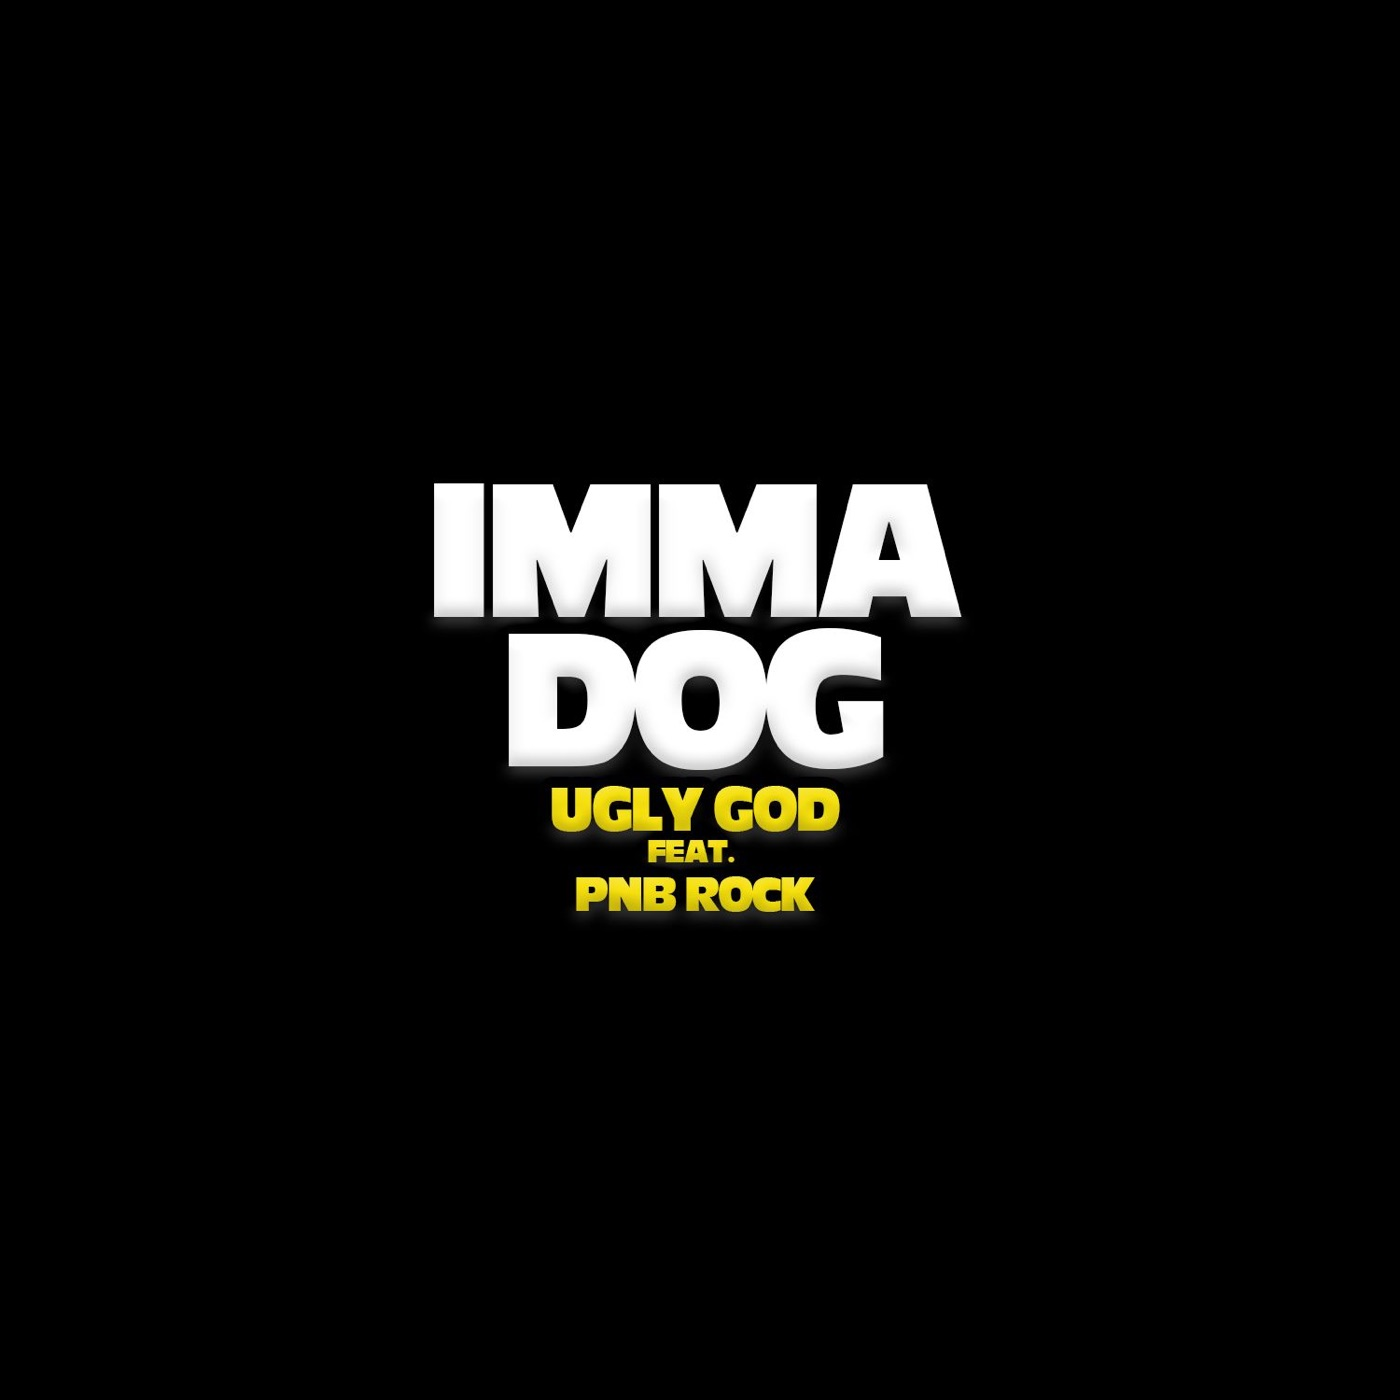 Ugly God - Imma Dog (feat. PnB Rock) - Single Cover